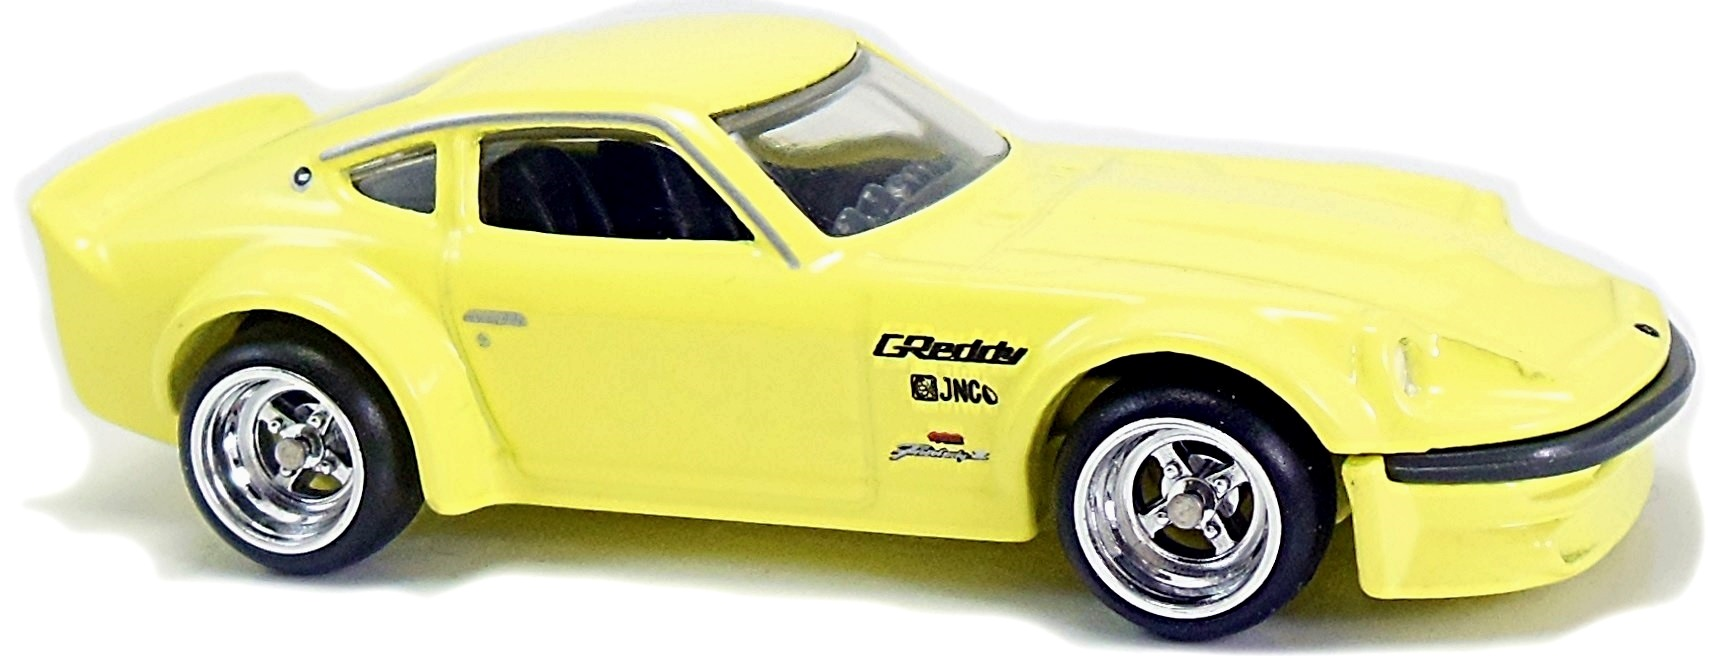 2018 Car Culture Hot Wheels Newsletter